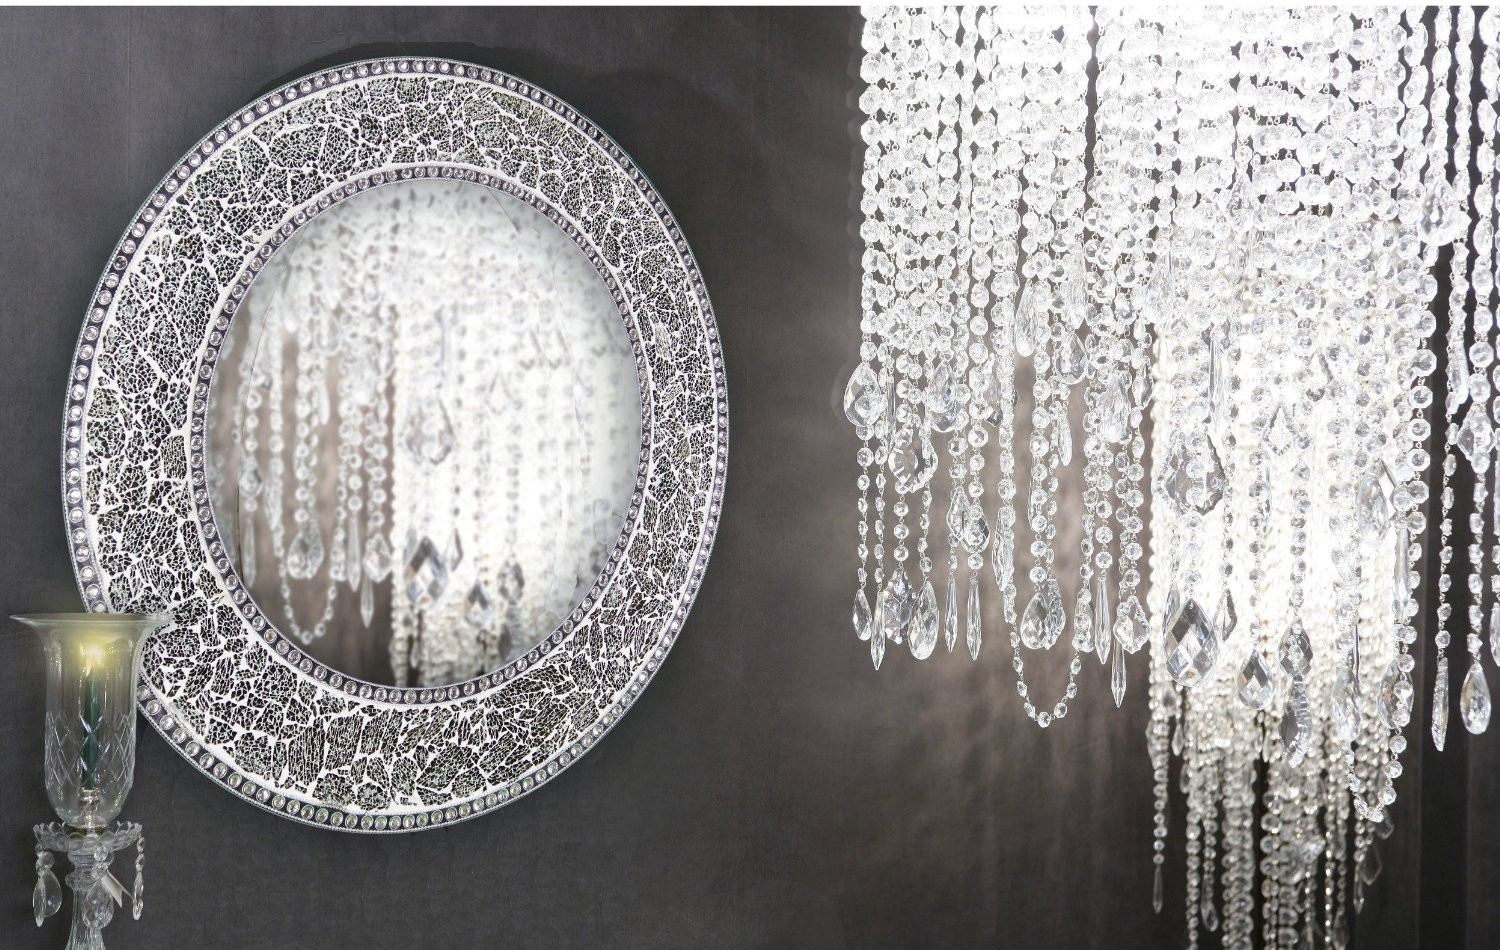 Buy 24 Silver Round Crackled Glass Mosaic Decorative Wall Mirror Online Decorshore